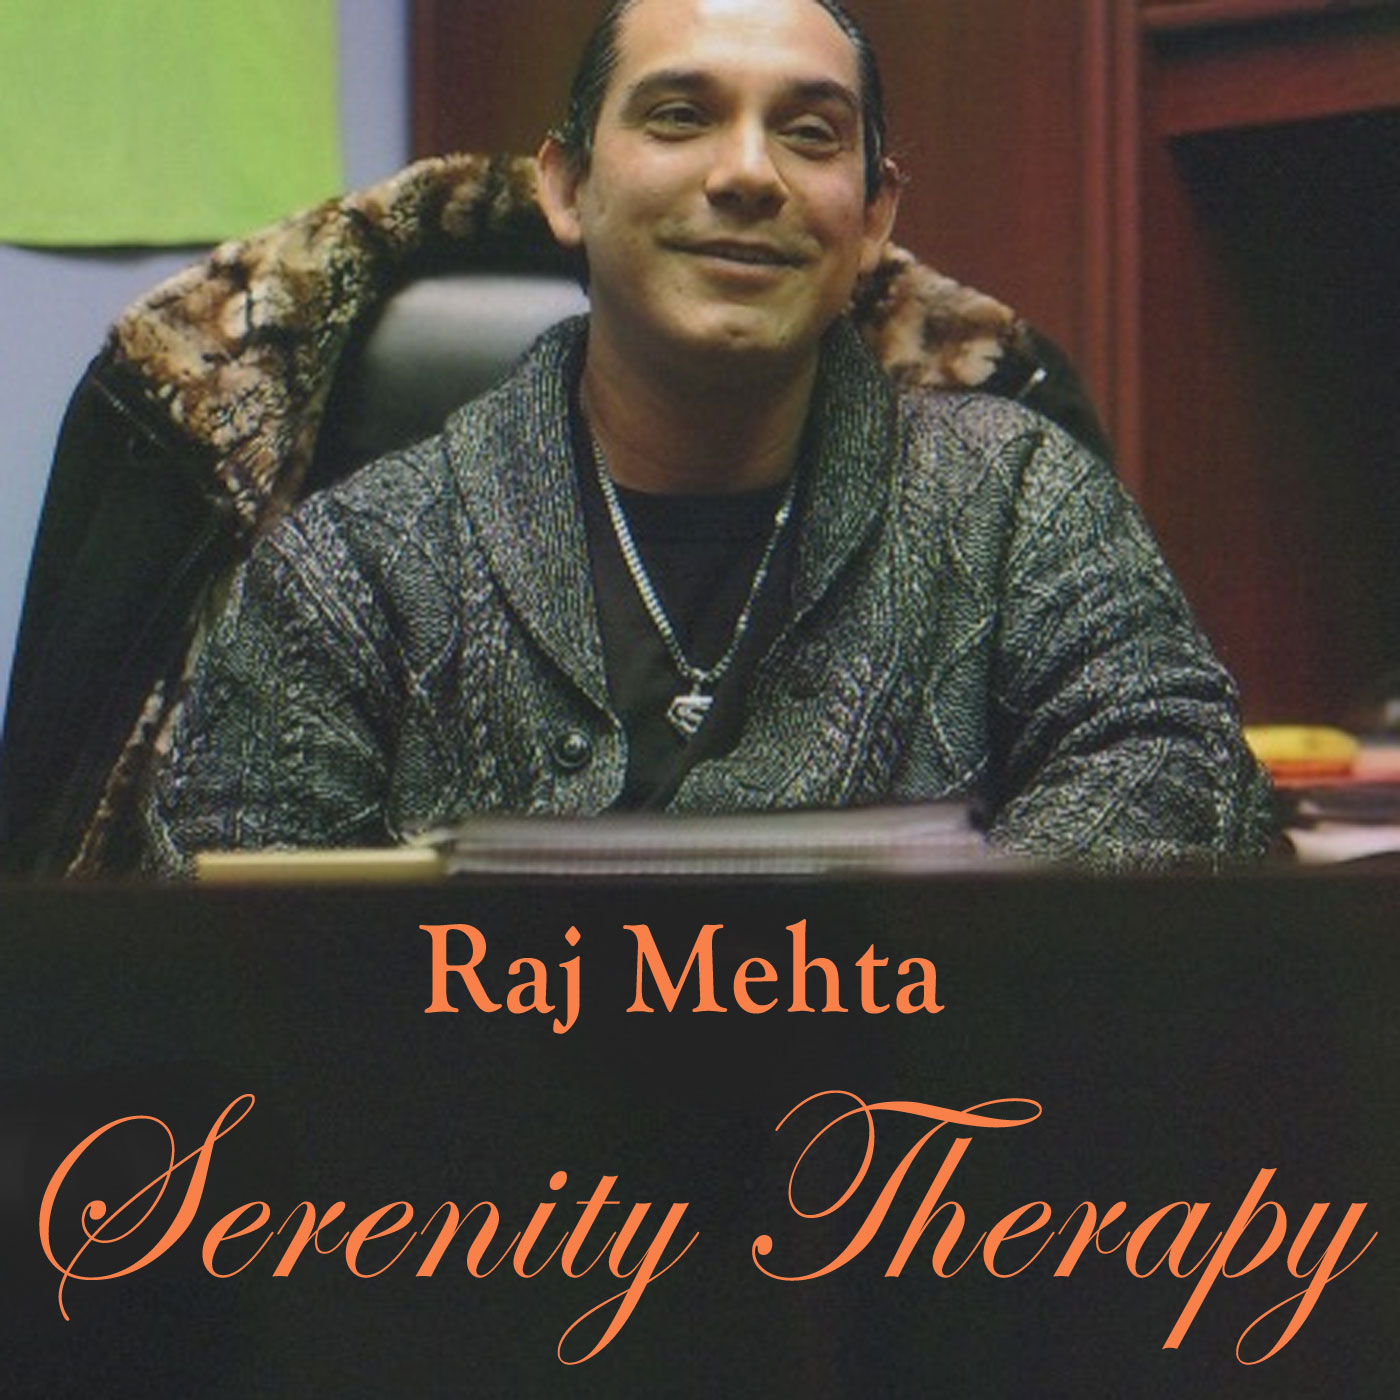 Serenity Therapy: Raj Mehta's Lectures on Addiction